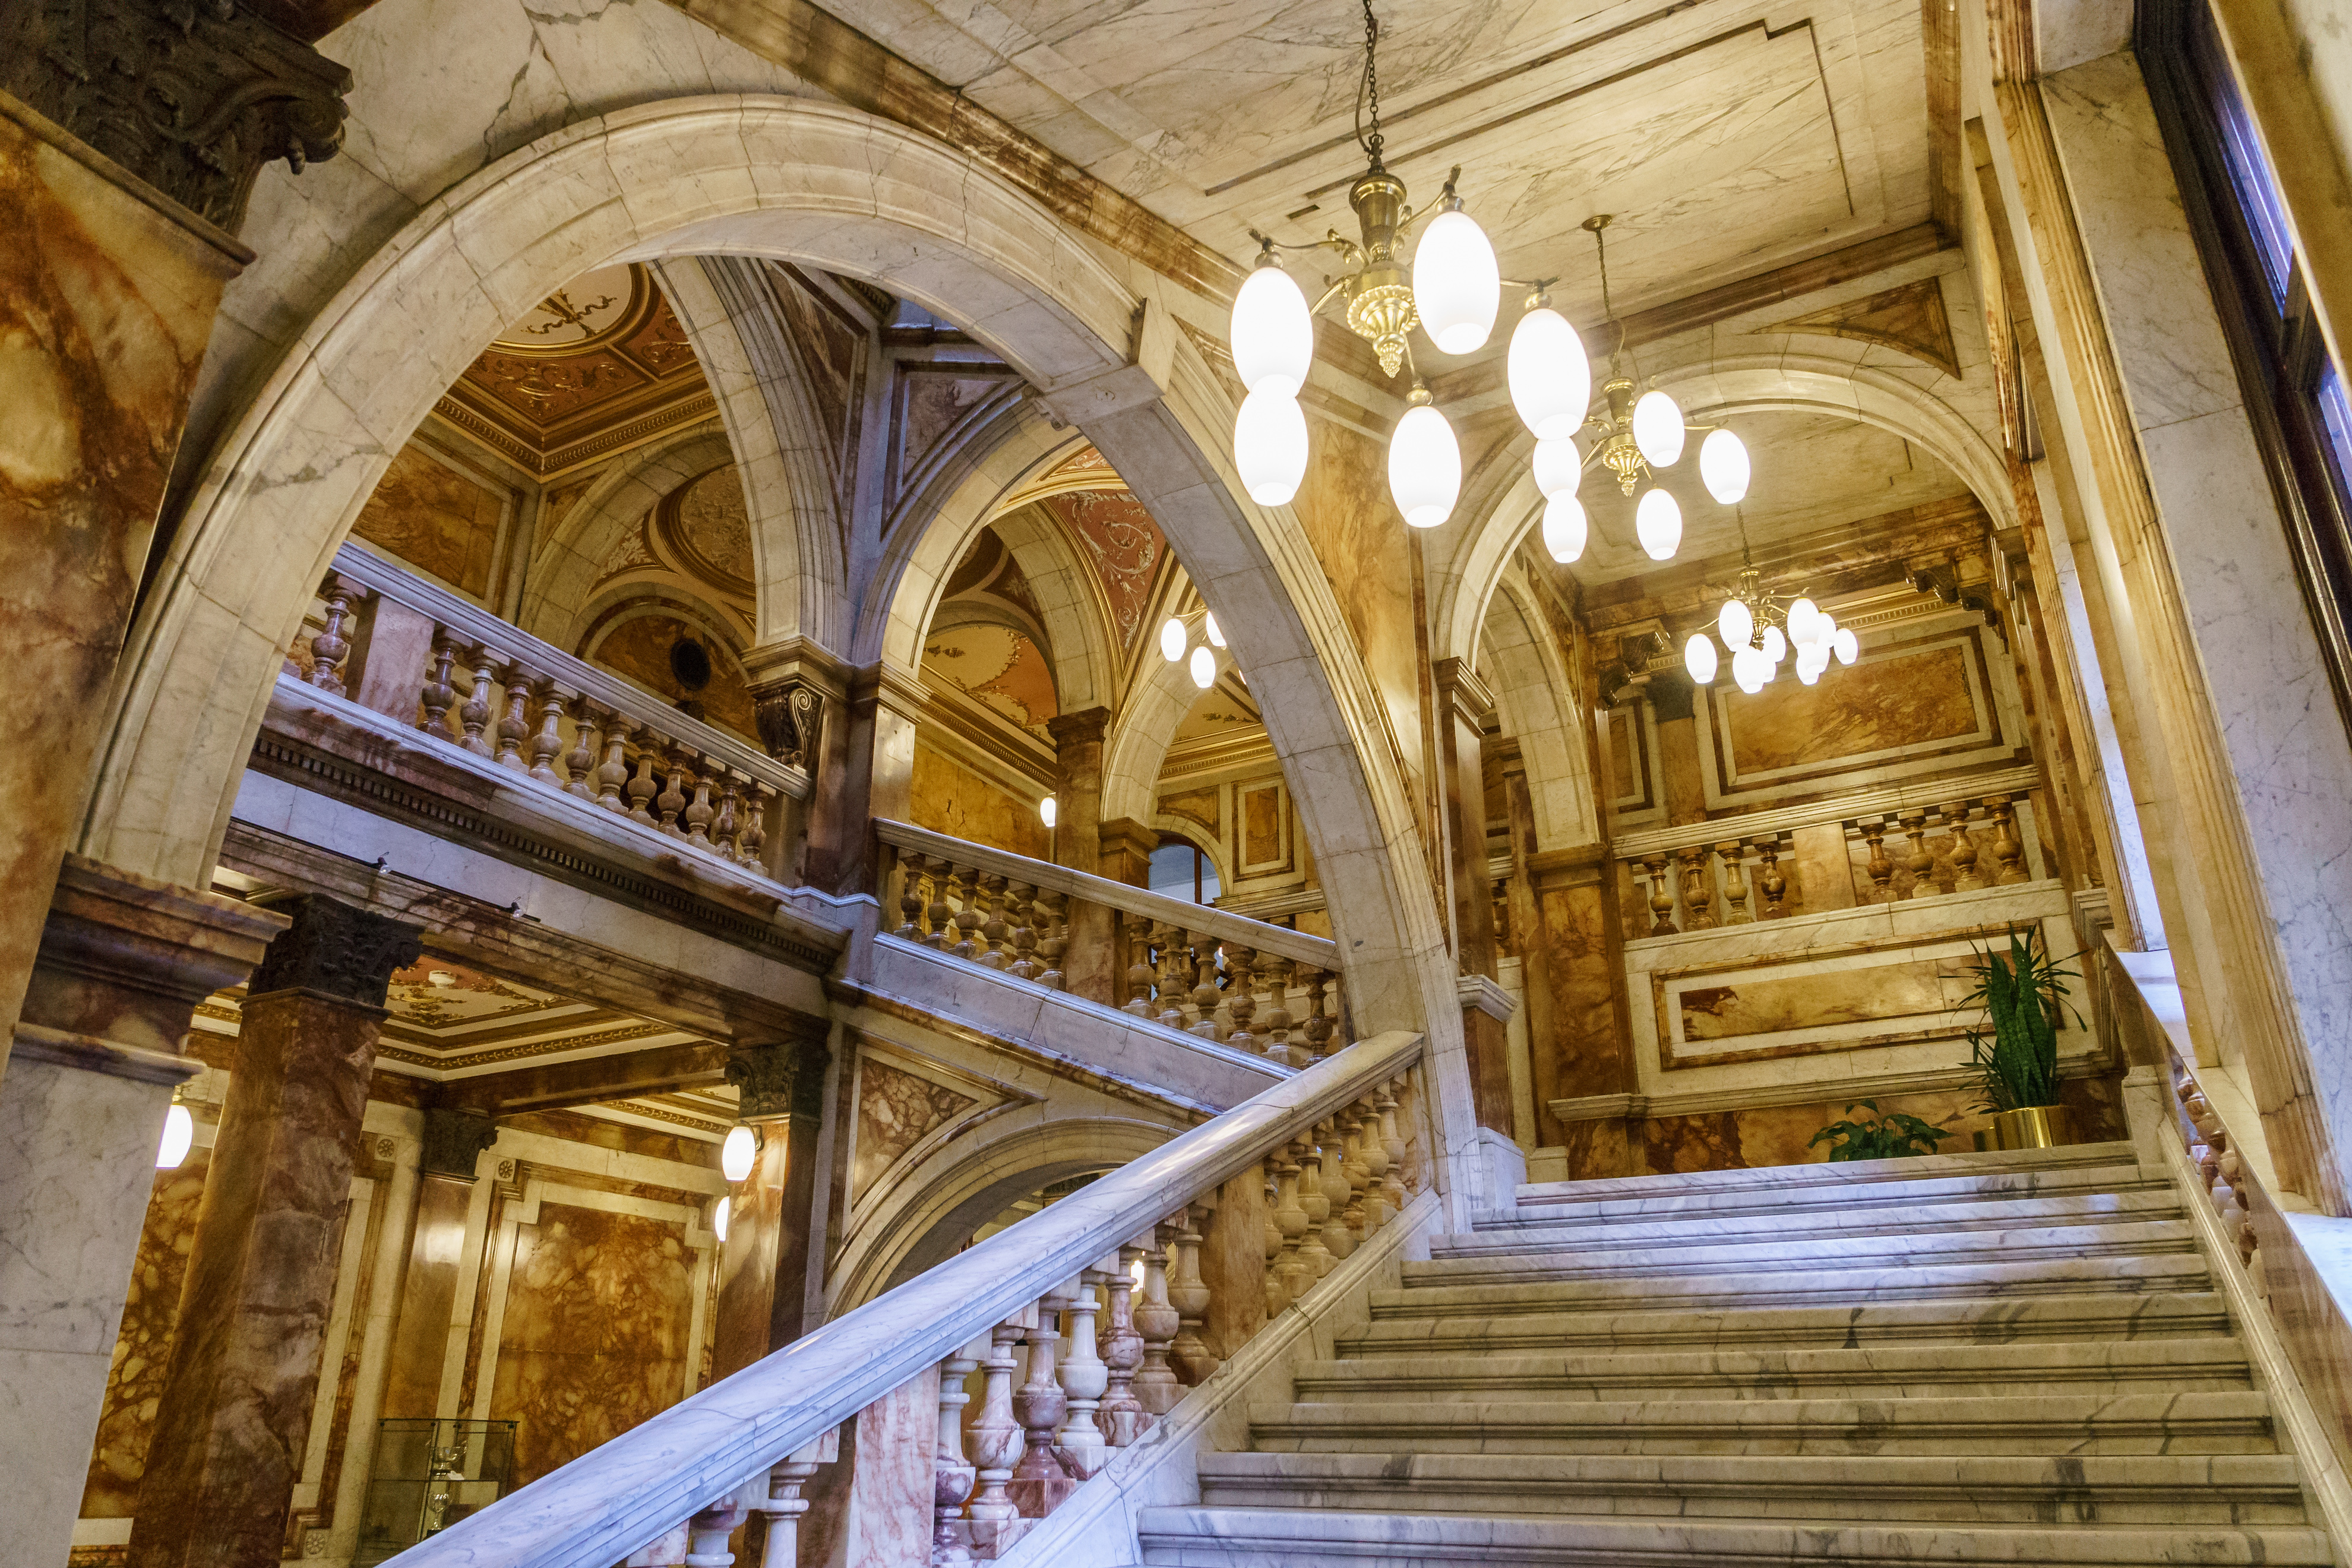 Glasgow City Chambers - Staircase - 7